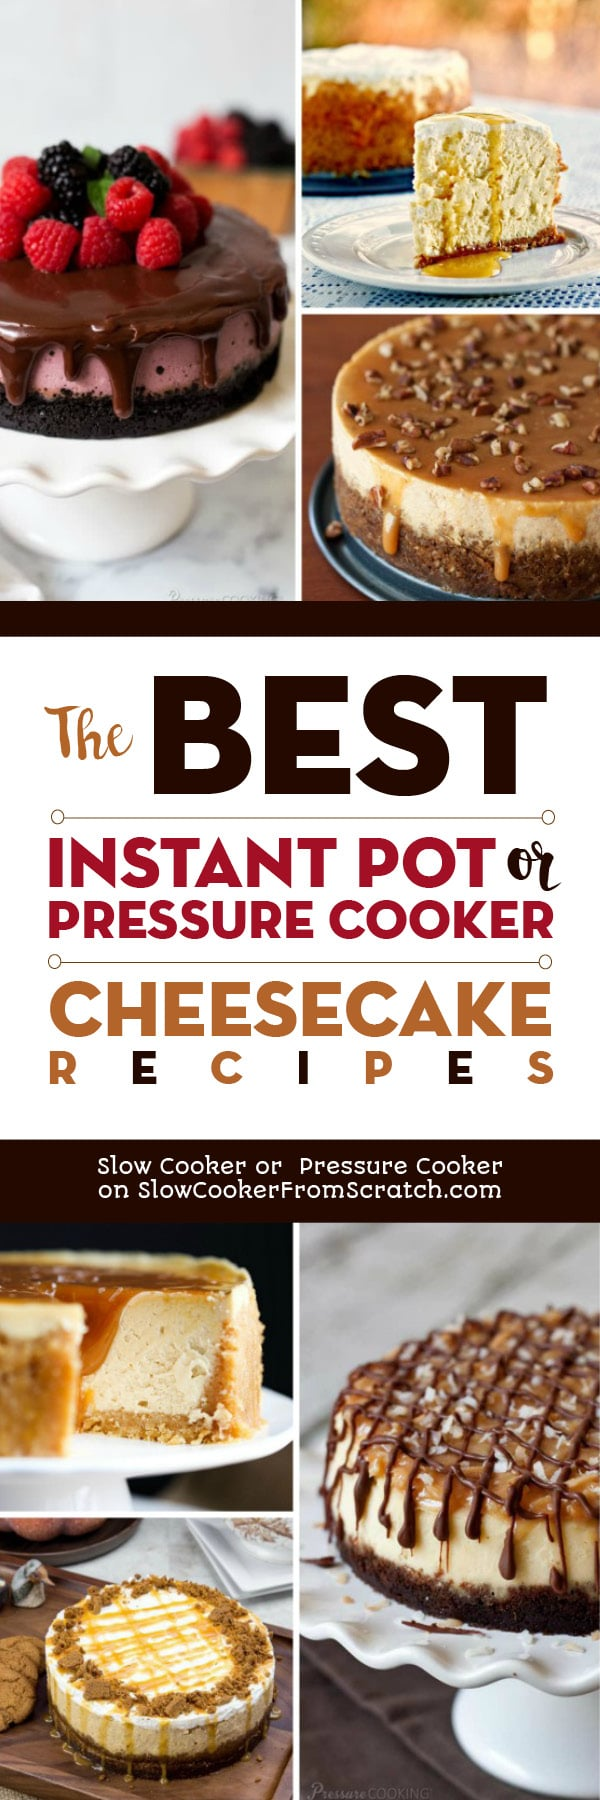 The BEST Instant Pot or Pressure Cooker Cheesecake Recipes featured on Slow Cooker or Pressure Cooker at SlowCookerFromScratch.com